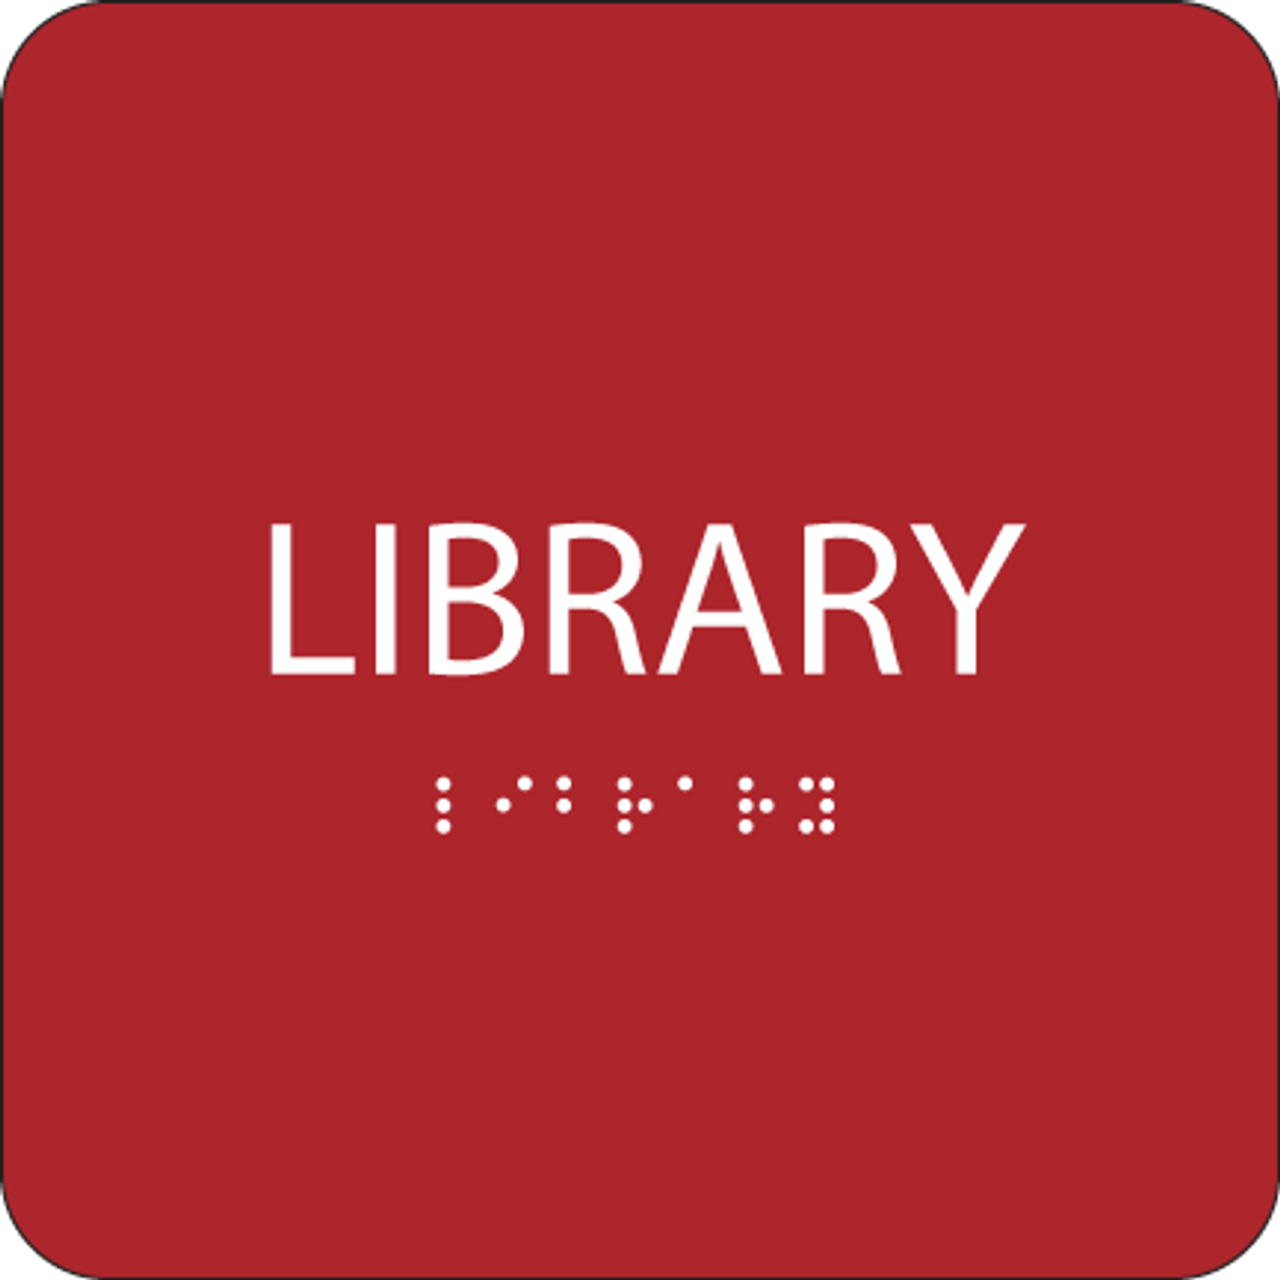 Red Library ADA Sign